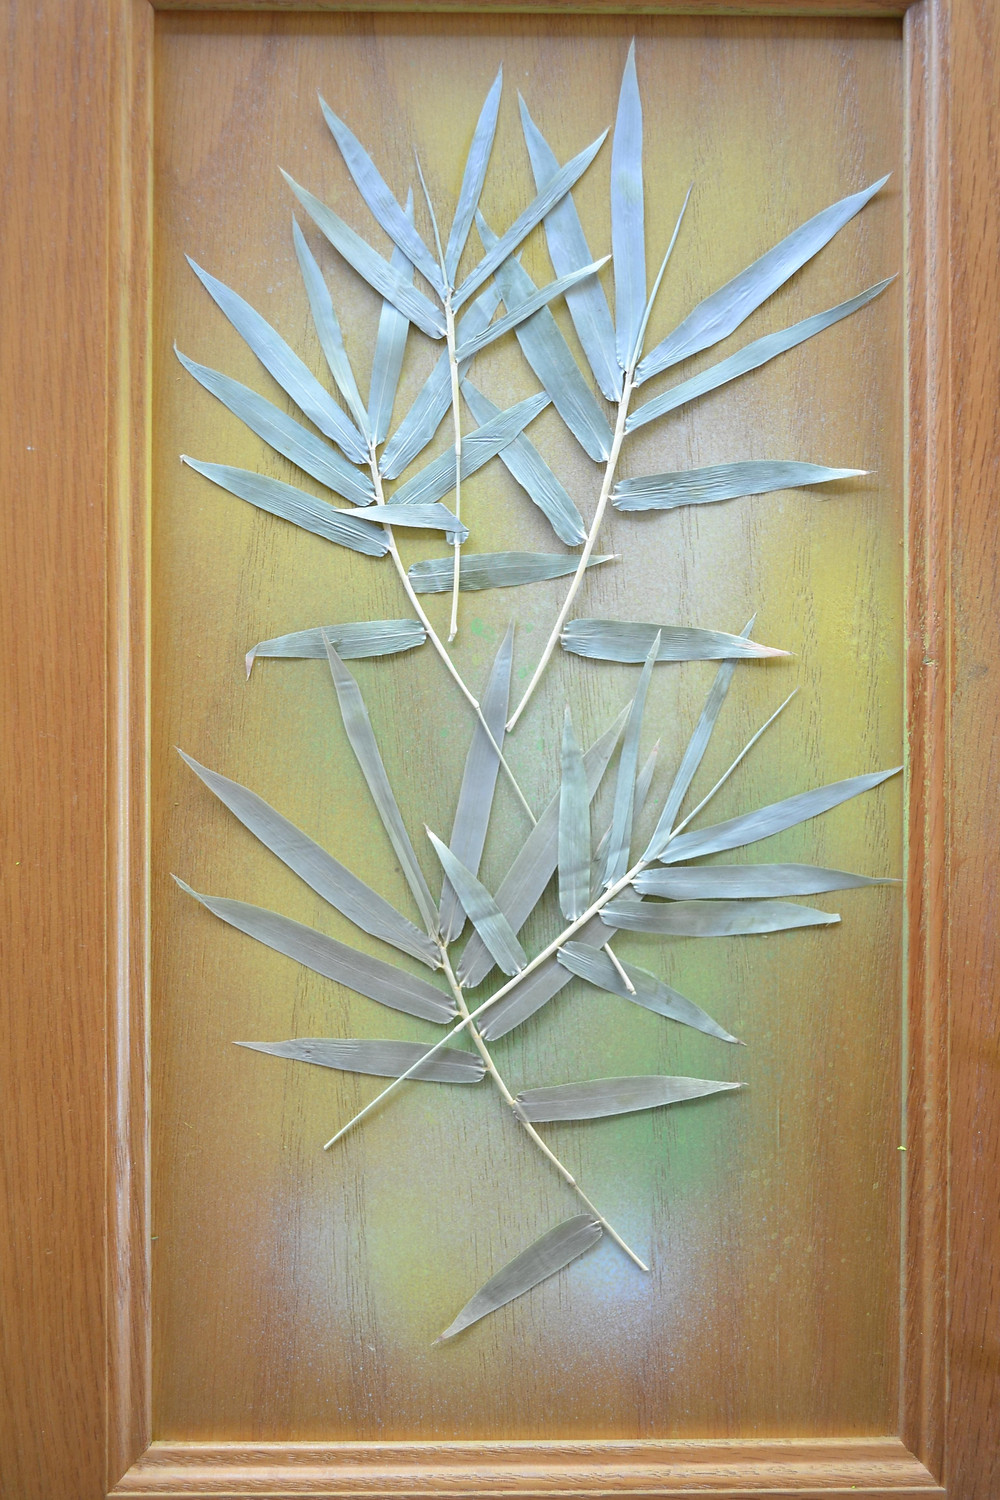 A door of a wooden cabinet with dried pressed plant of Bamboo. Pressed Flower Craft.